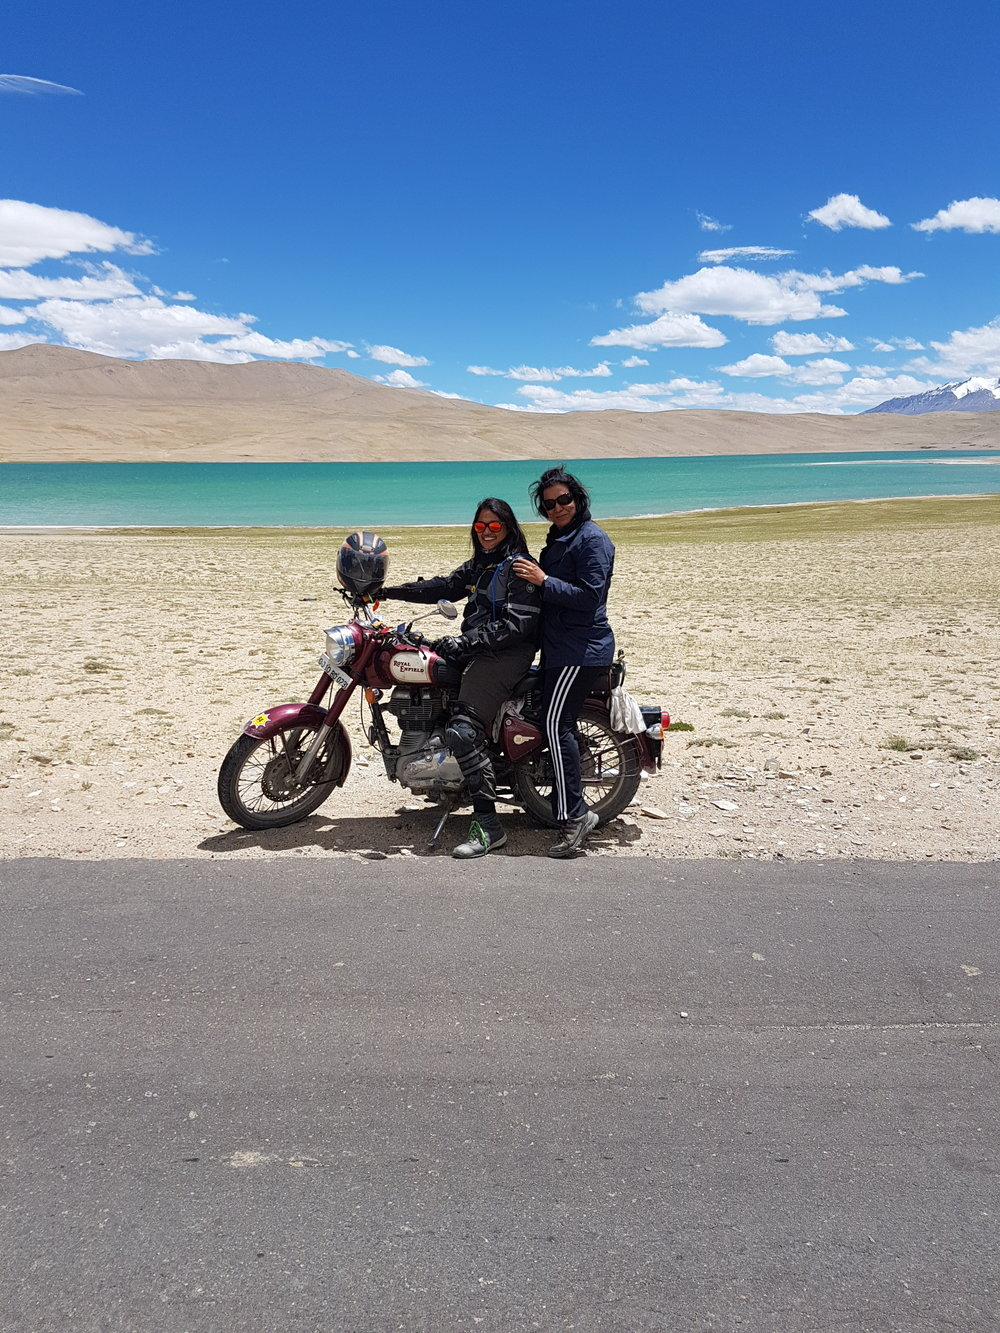 The enchanting moments of Manali to Leh bike trip